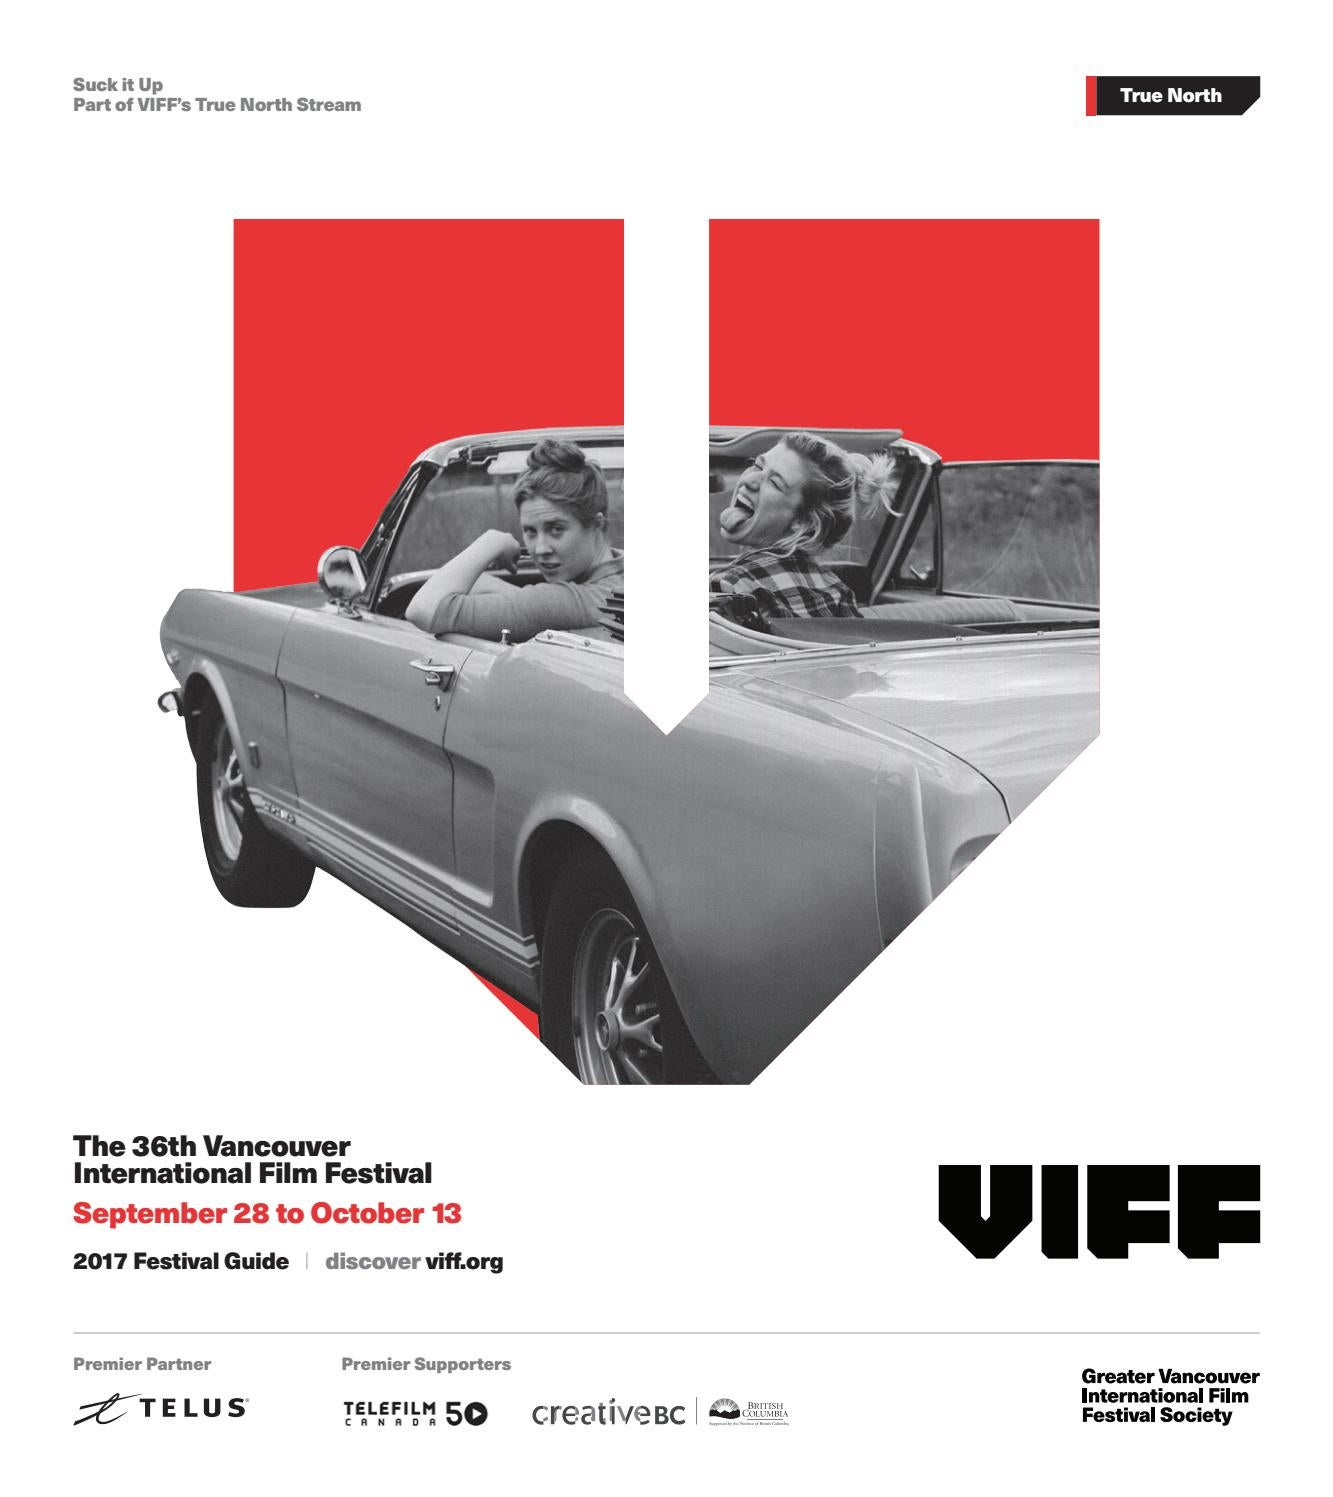 The Vancouver International Film Festival Program Guide 2017 by